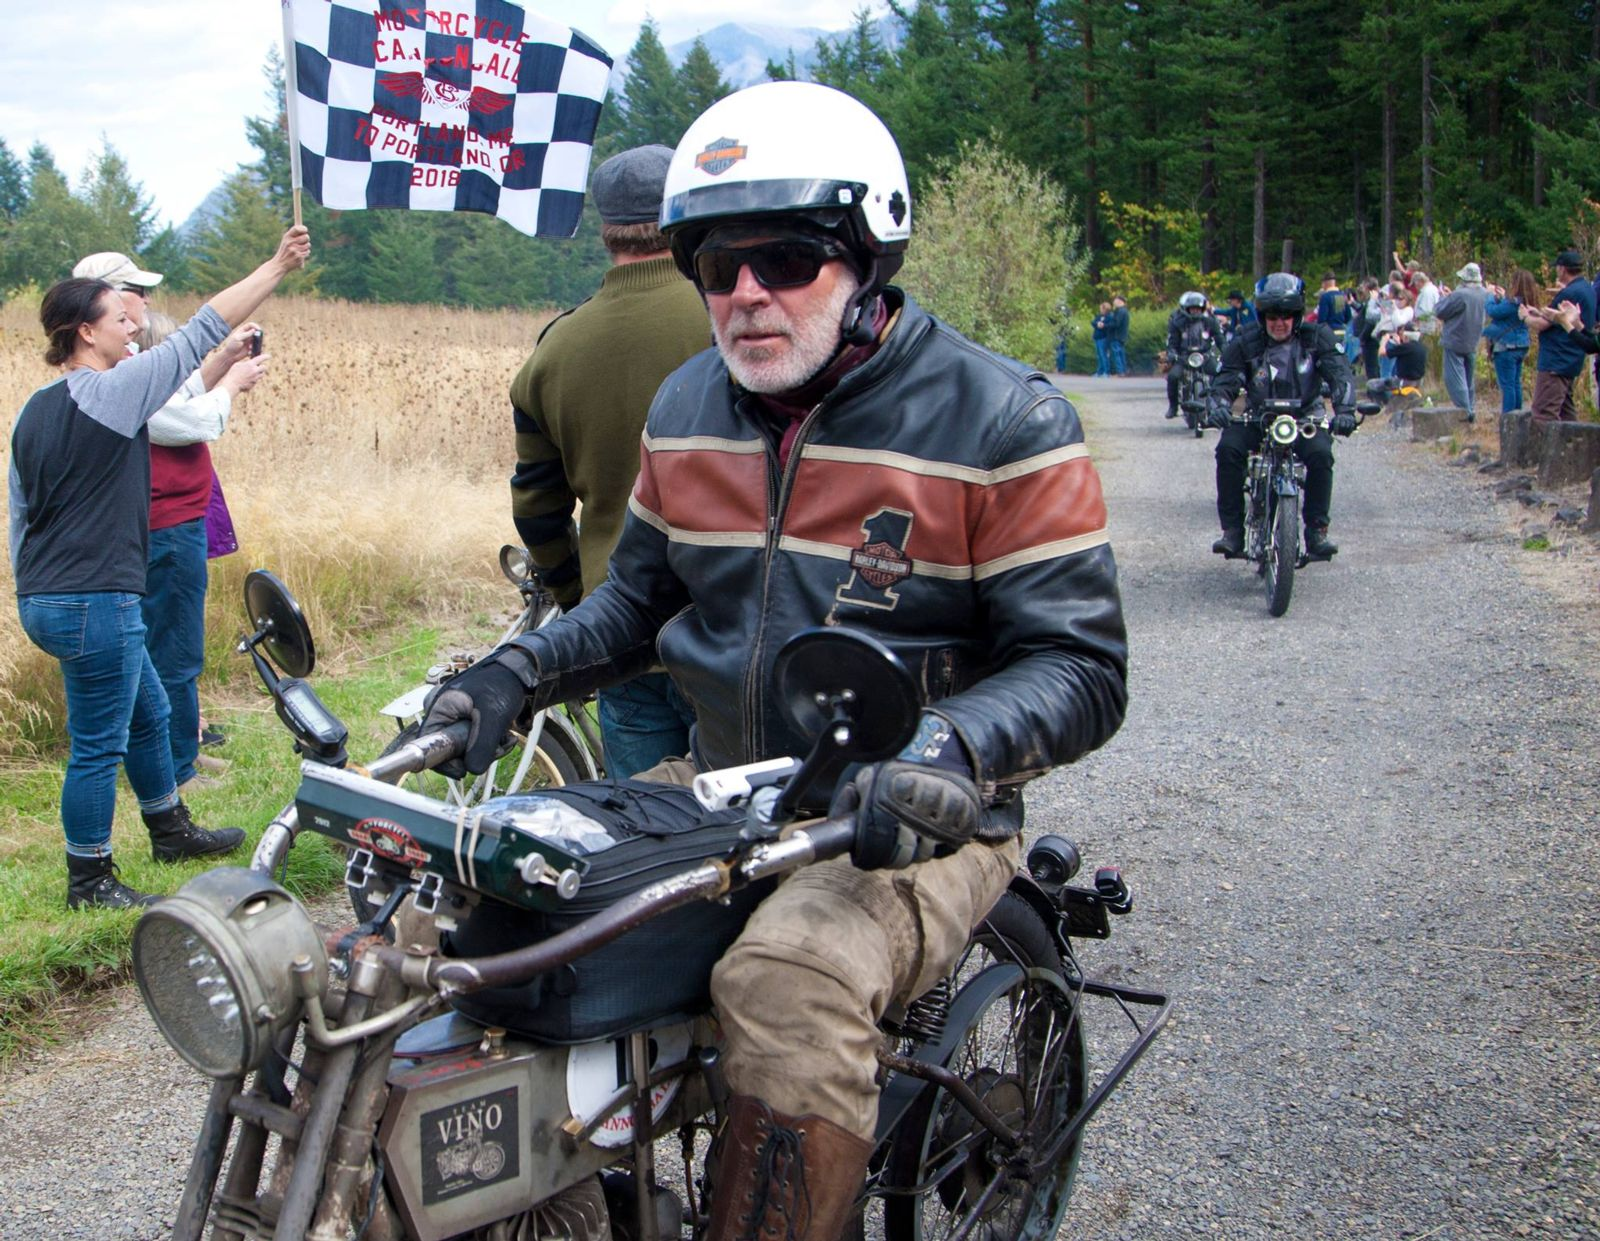 Winner of the 2018 Motorcycle Cannonball, Dean Bordigioni at the checkered flag